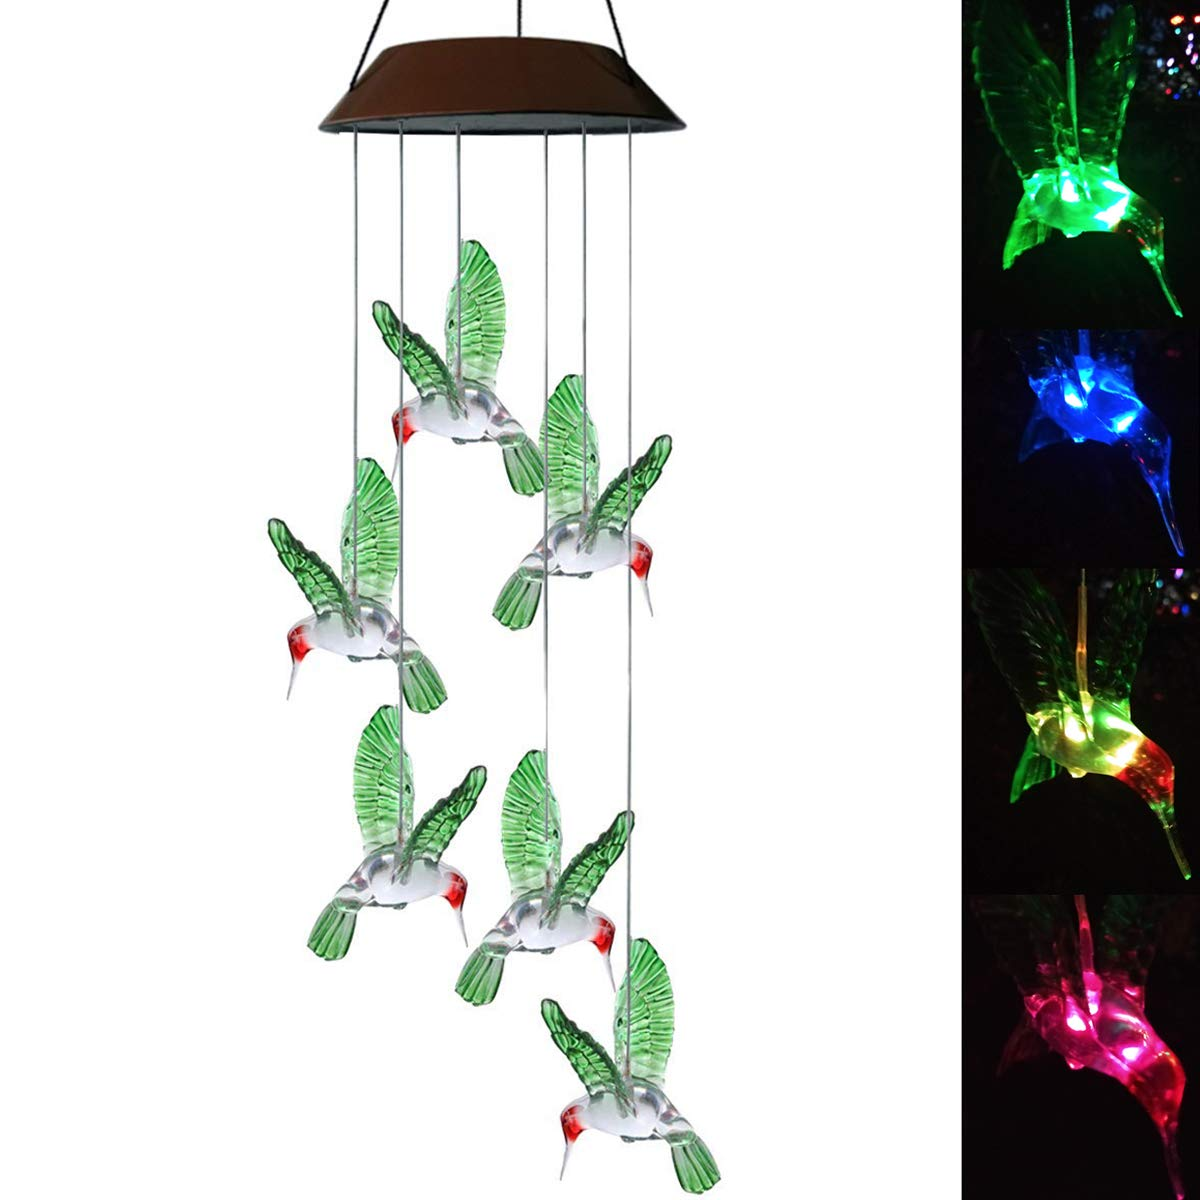 Color-Changing LED Solar Mobile Wind Chime LED Changing Light Color Waterproof Six Hummingbird Wind Chimes For Home Party Night Garden Decoration